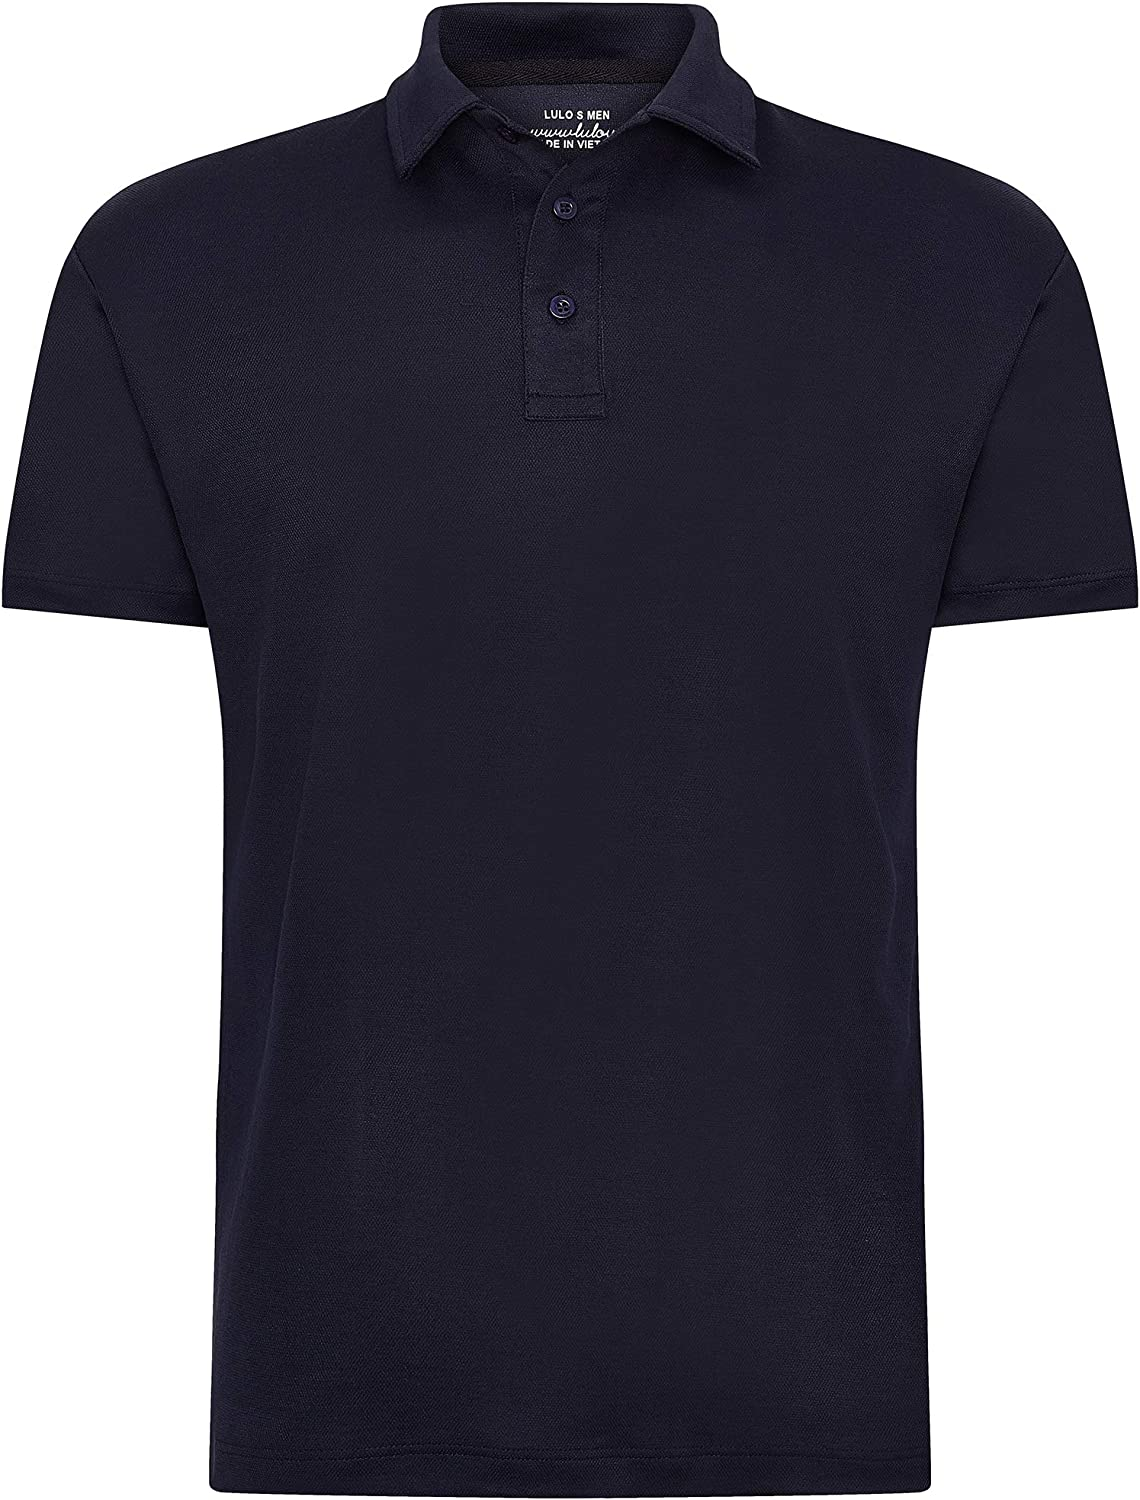 lulo Ment's Short Sleeve Cotton Back Pique Polo Shirt, Large